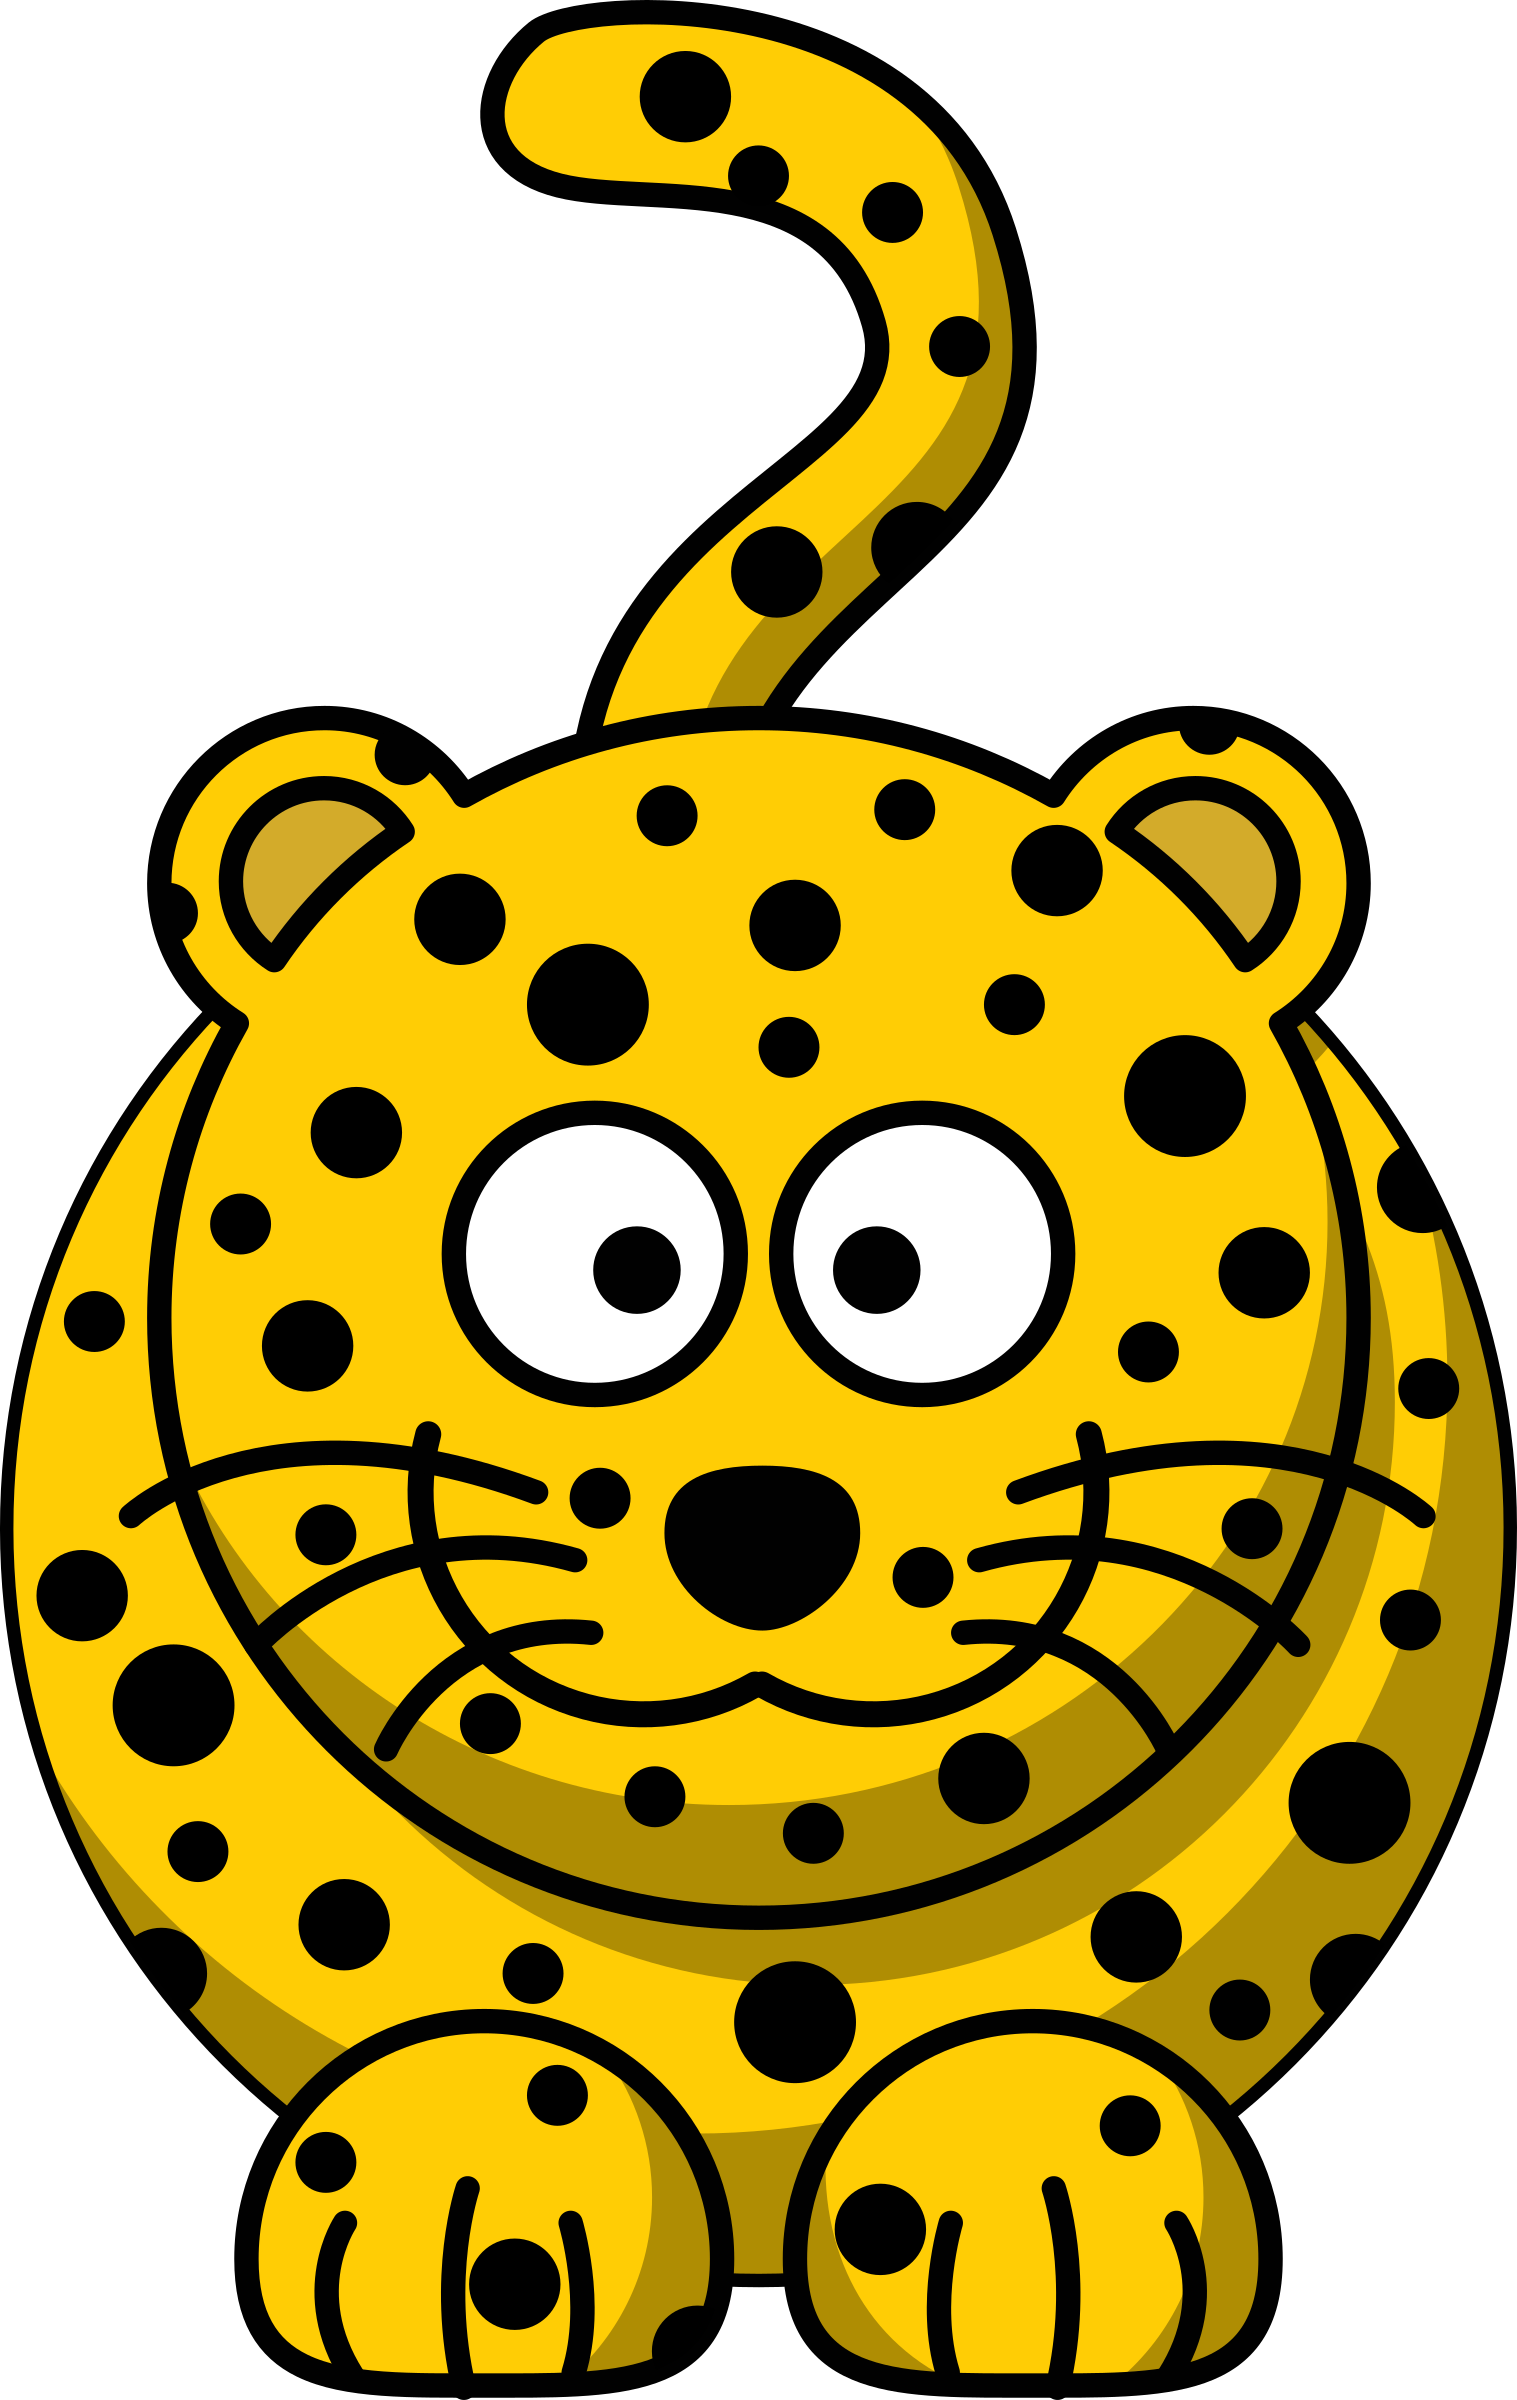 image black and white stock Leopard stylized free on. Cheetah clipart face.